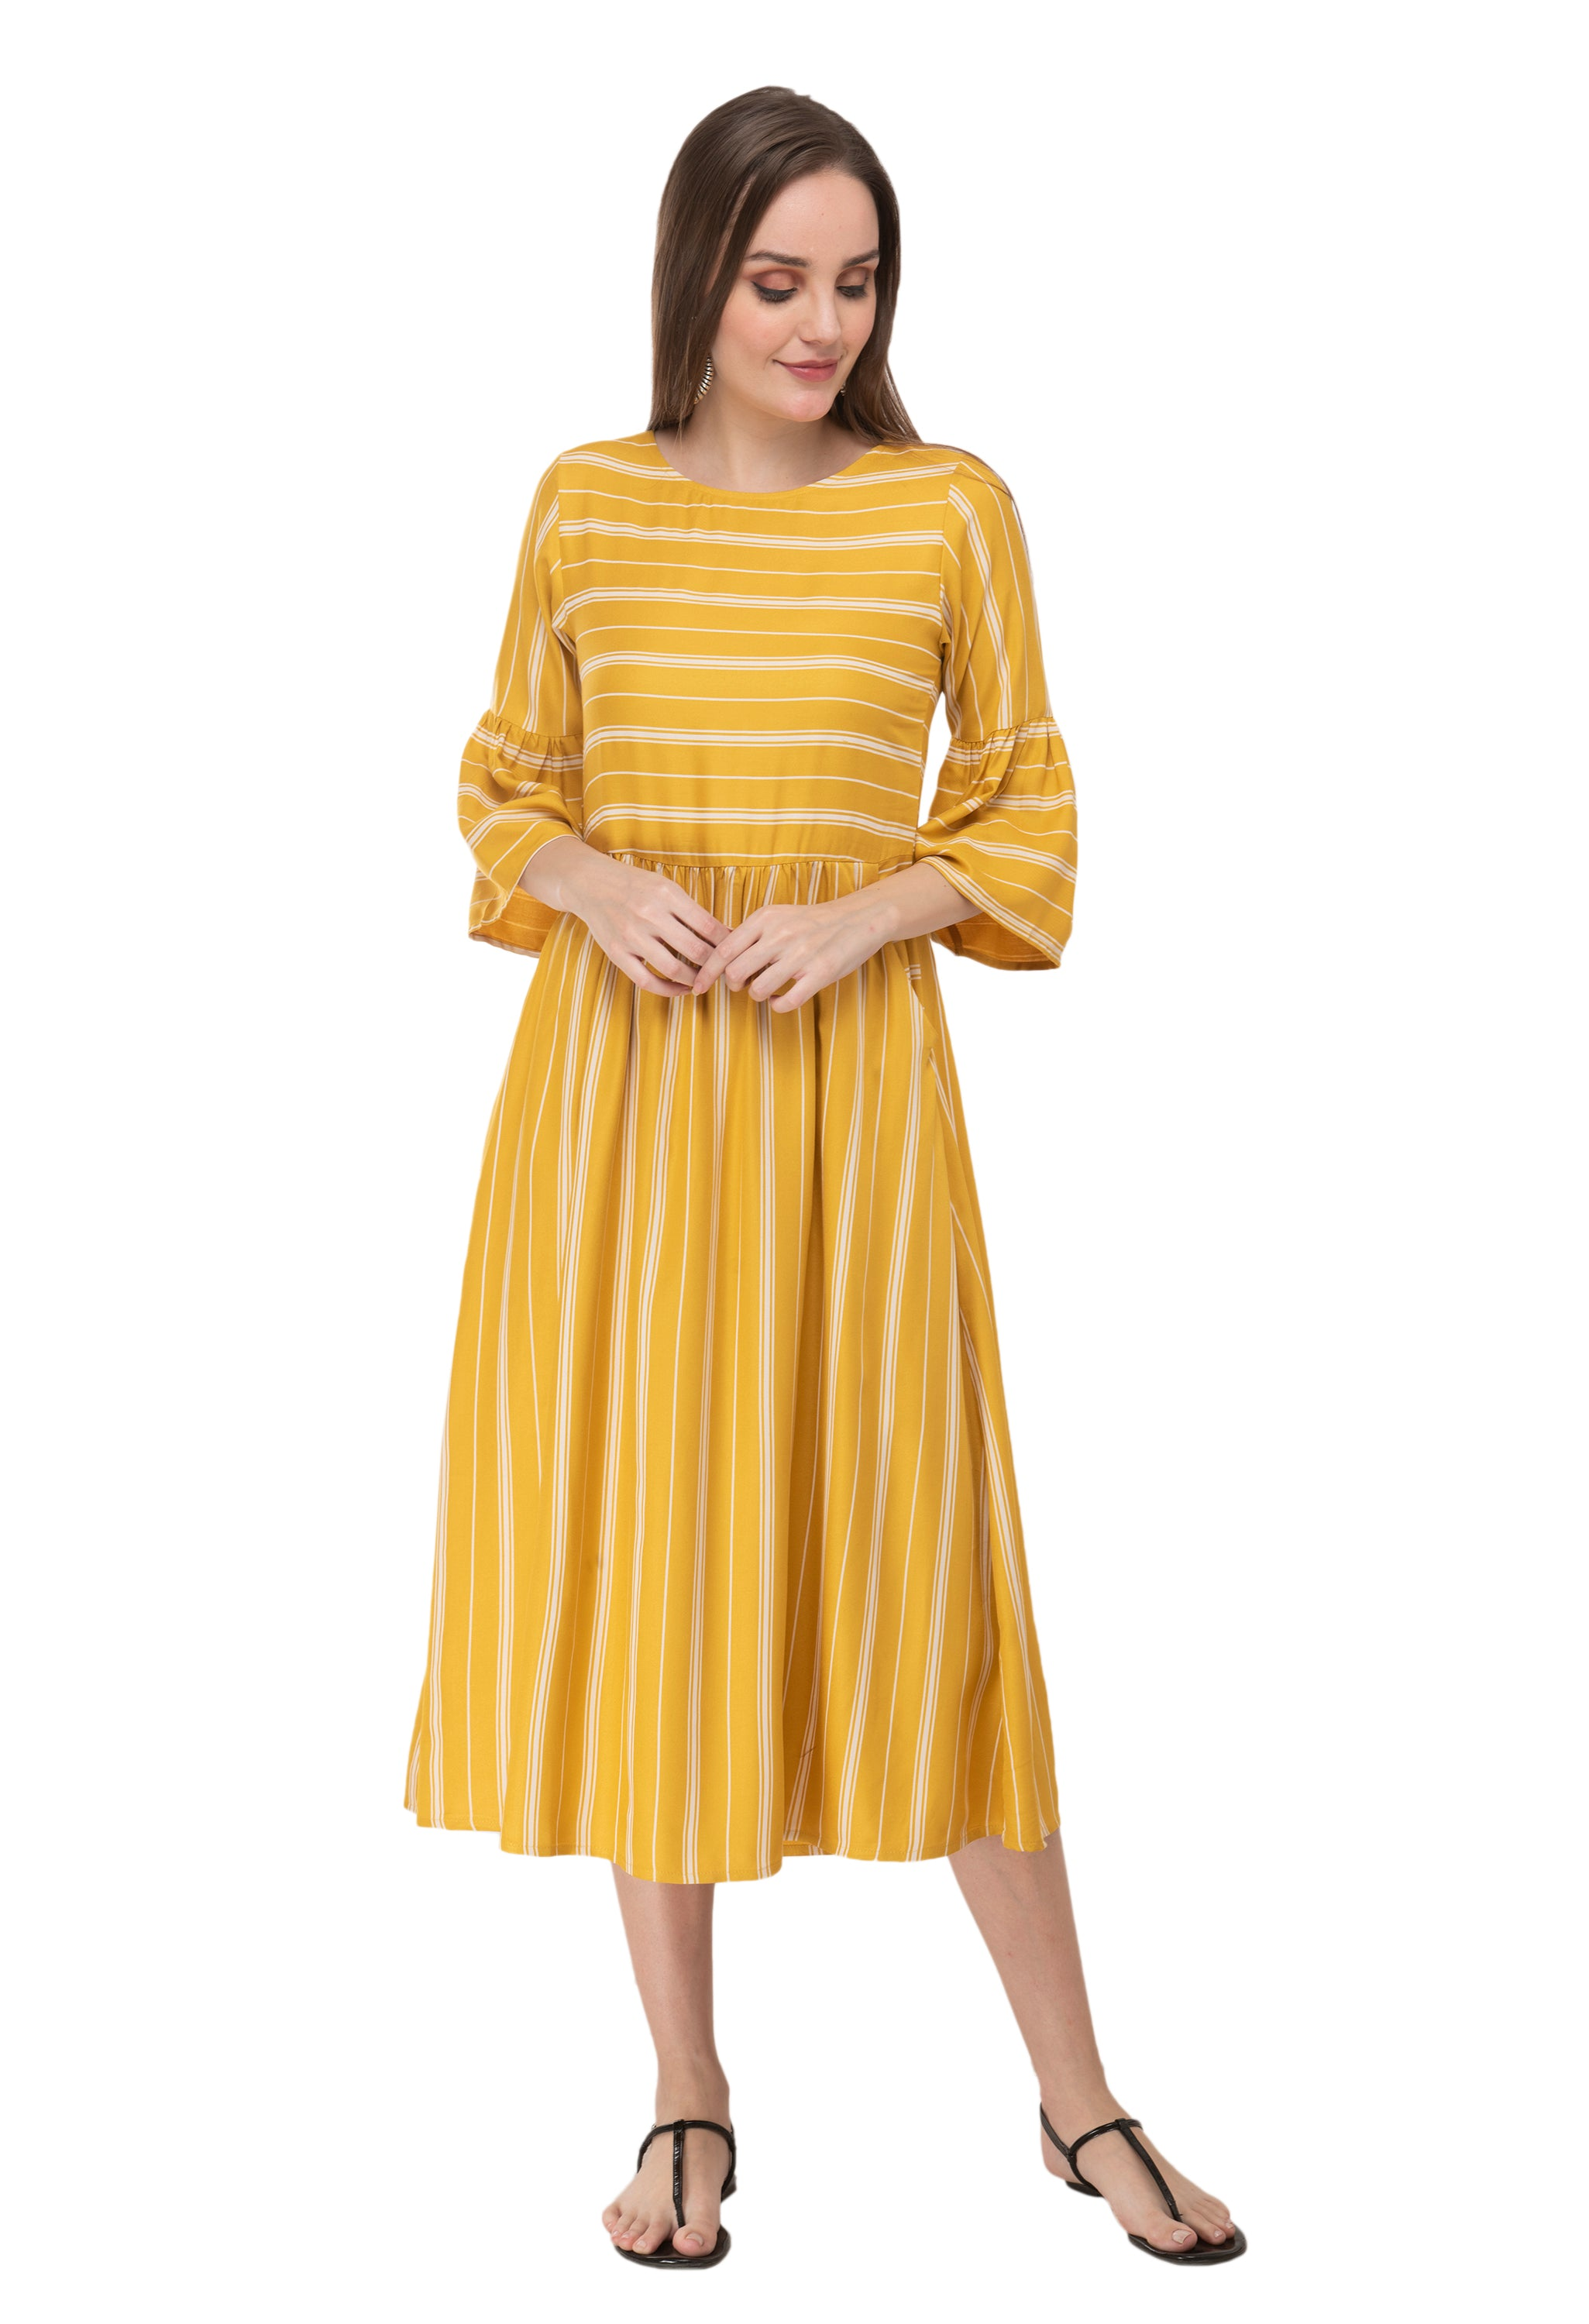 Arainna Yellow and White Striped Maxi Dress/One Piece Dress for Girls and Women